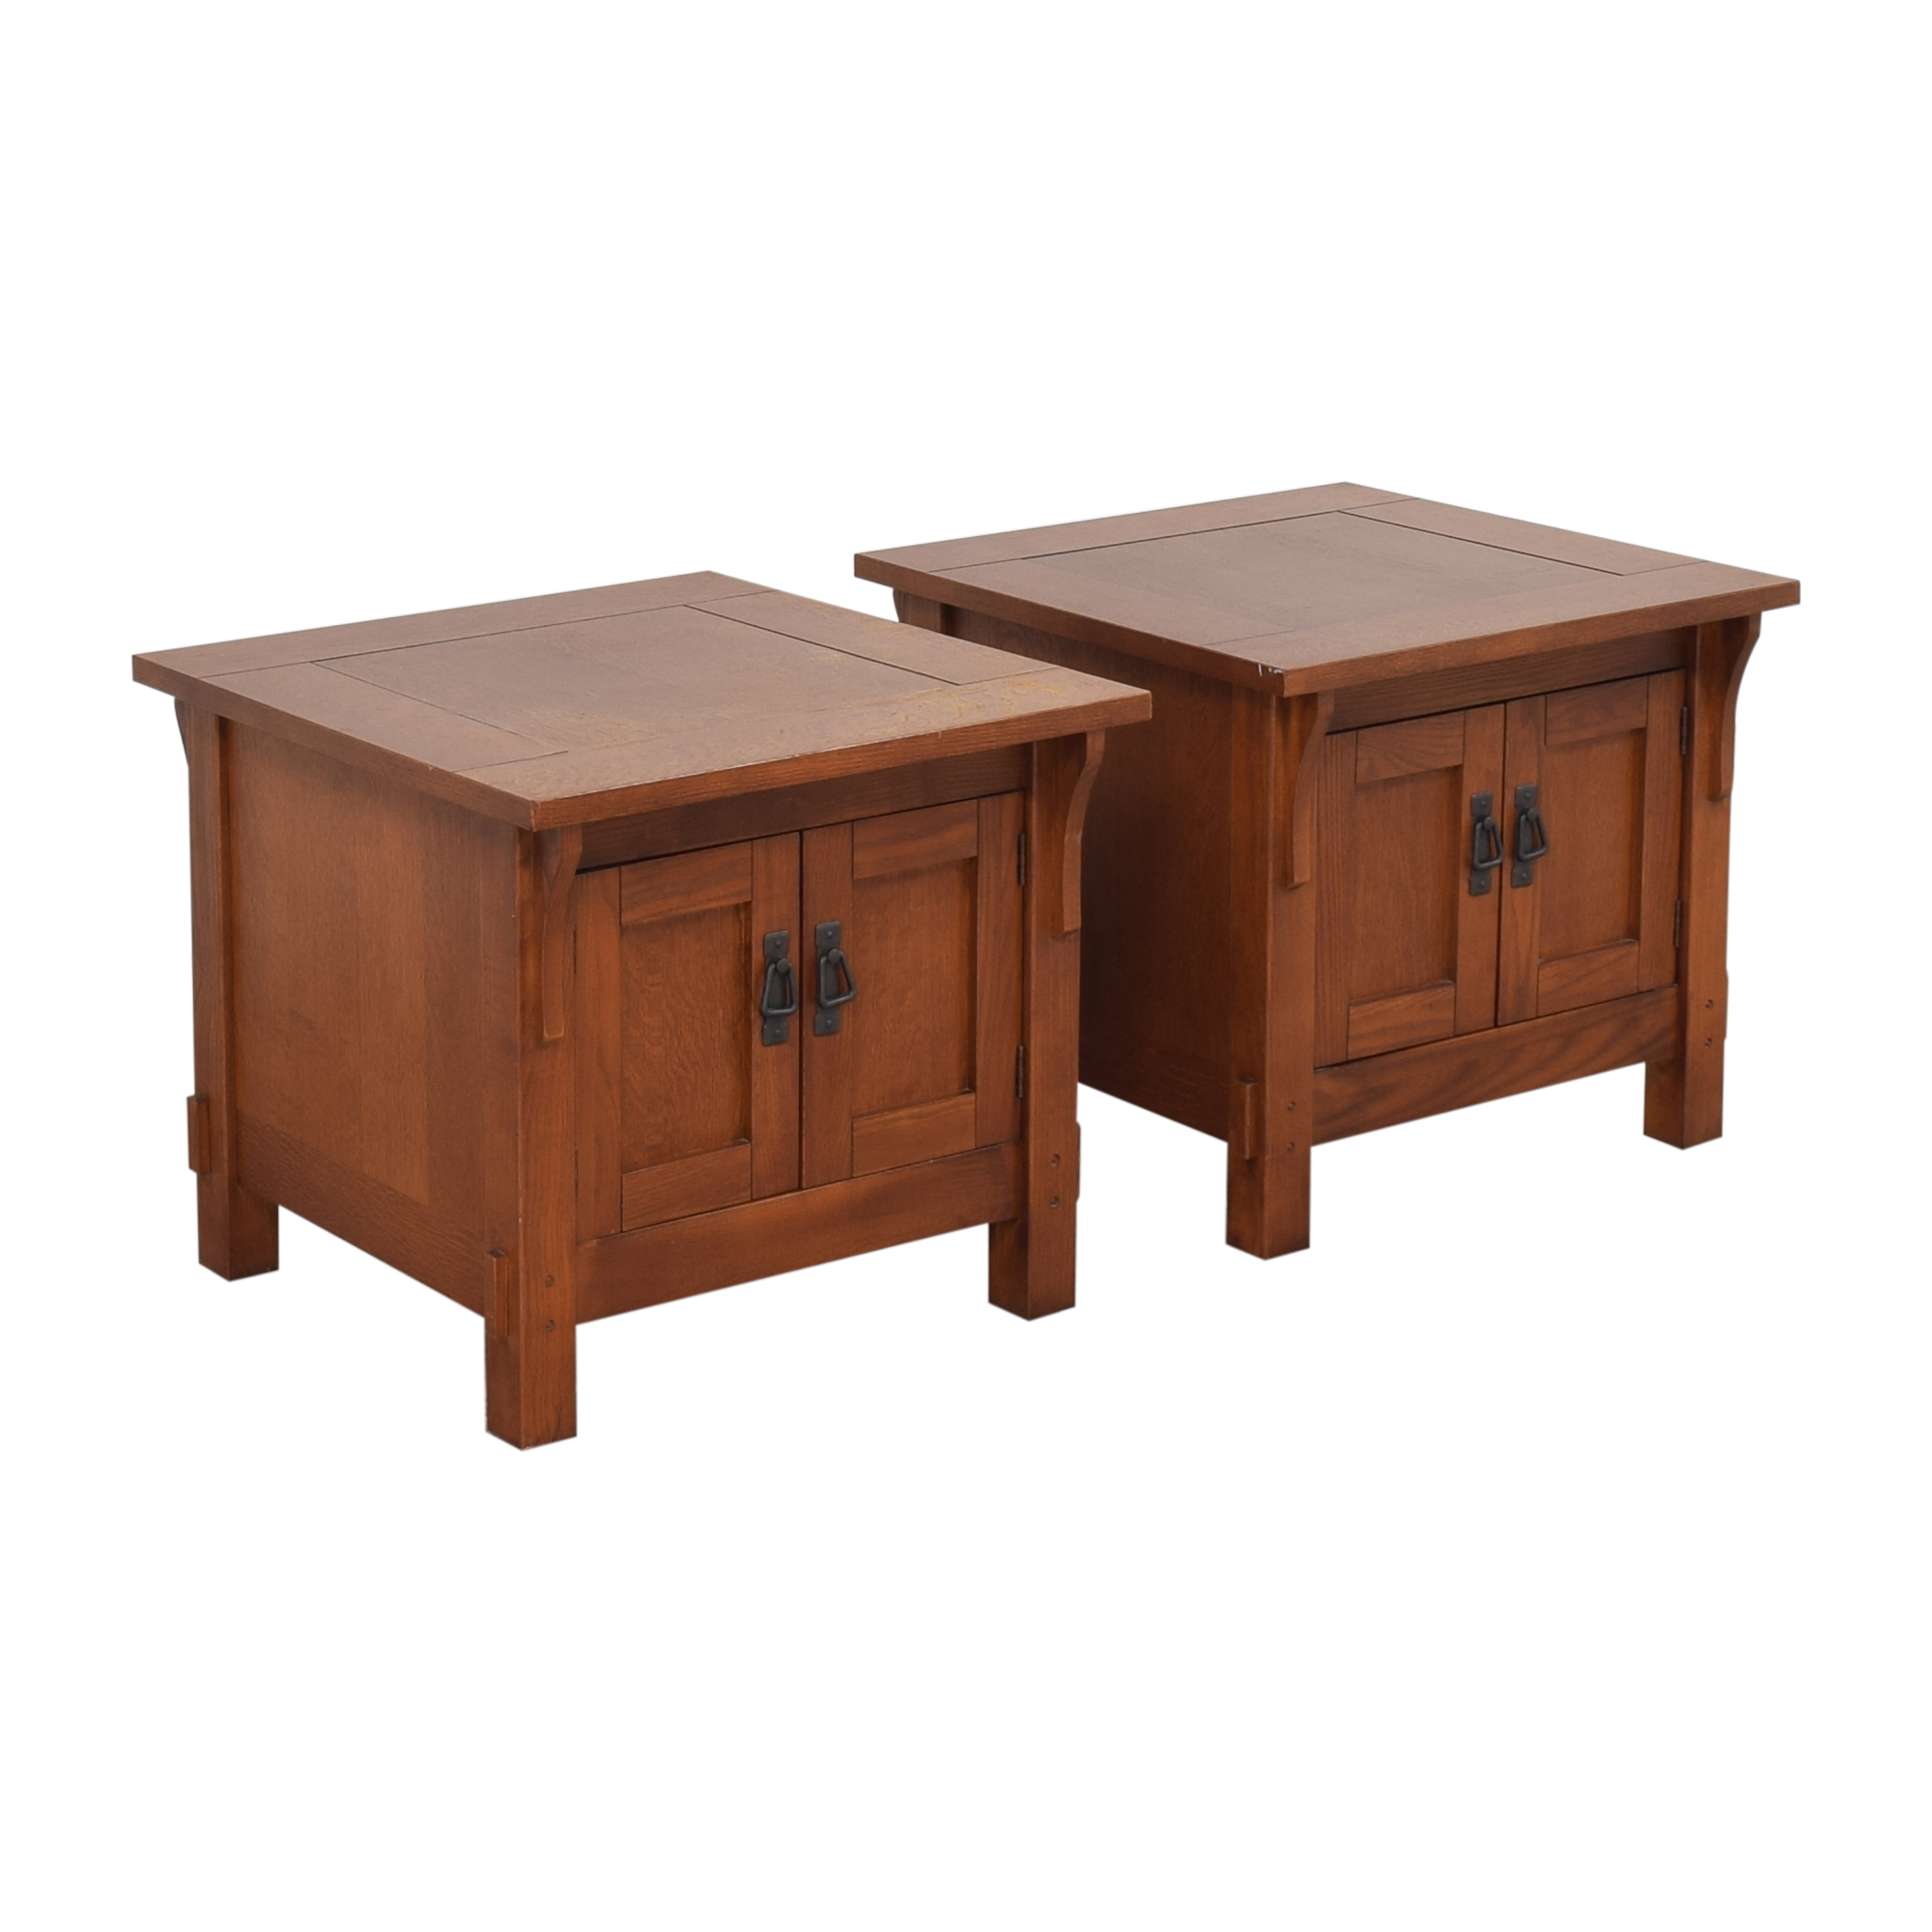 Bassett Furniture Bassett Furniture Two Door End Tables for sale